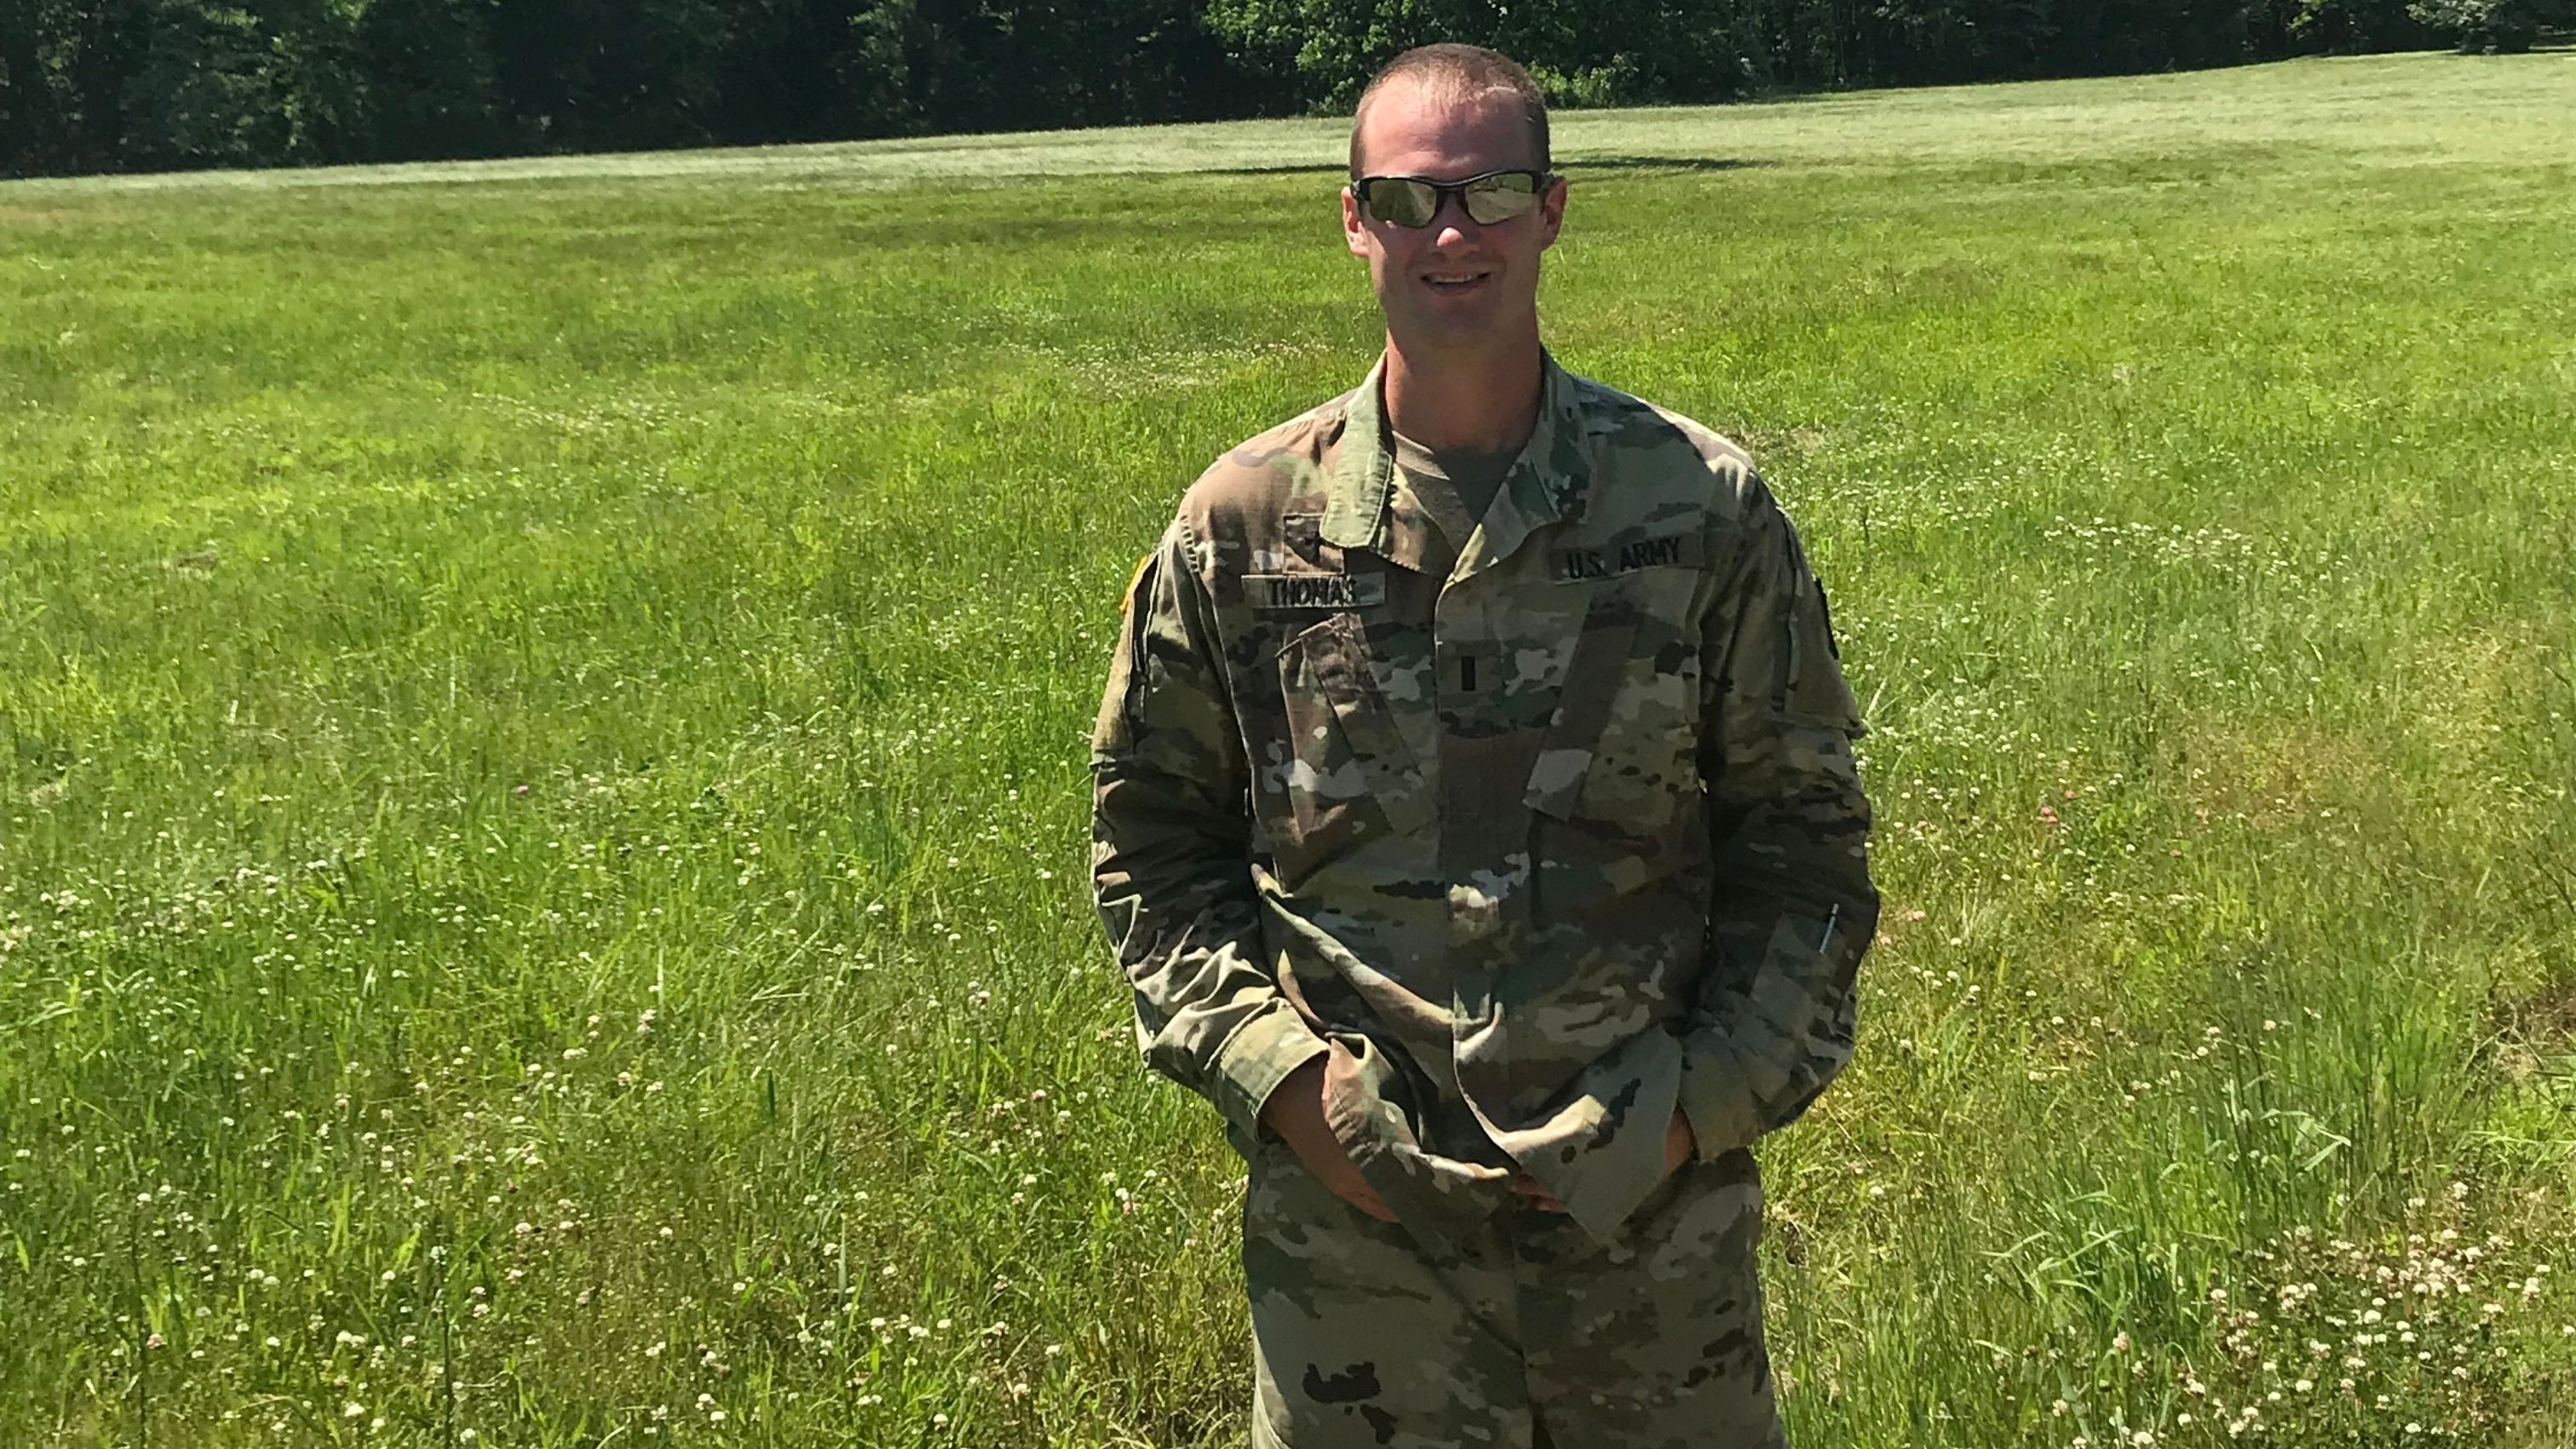 MPs handcuff, detain National Guard chaplain in Kuwait ... for wearing headphones